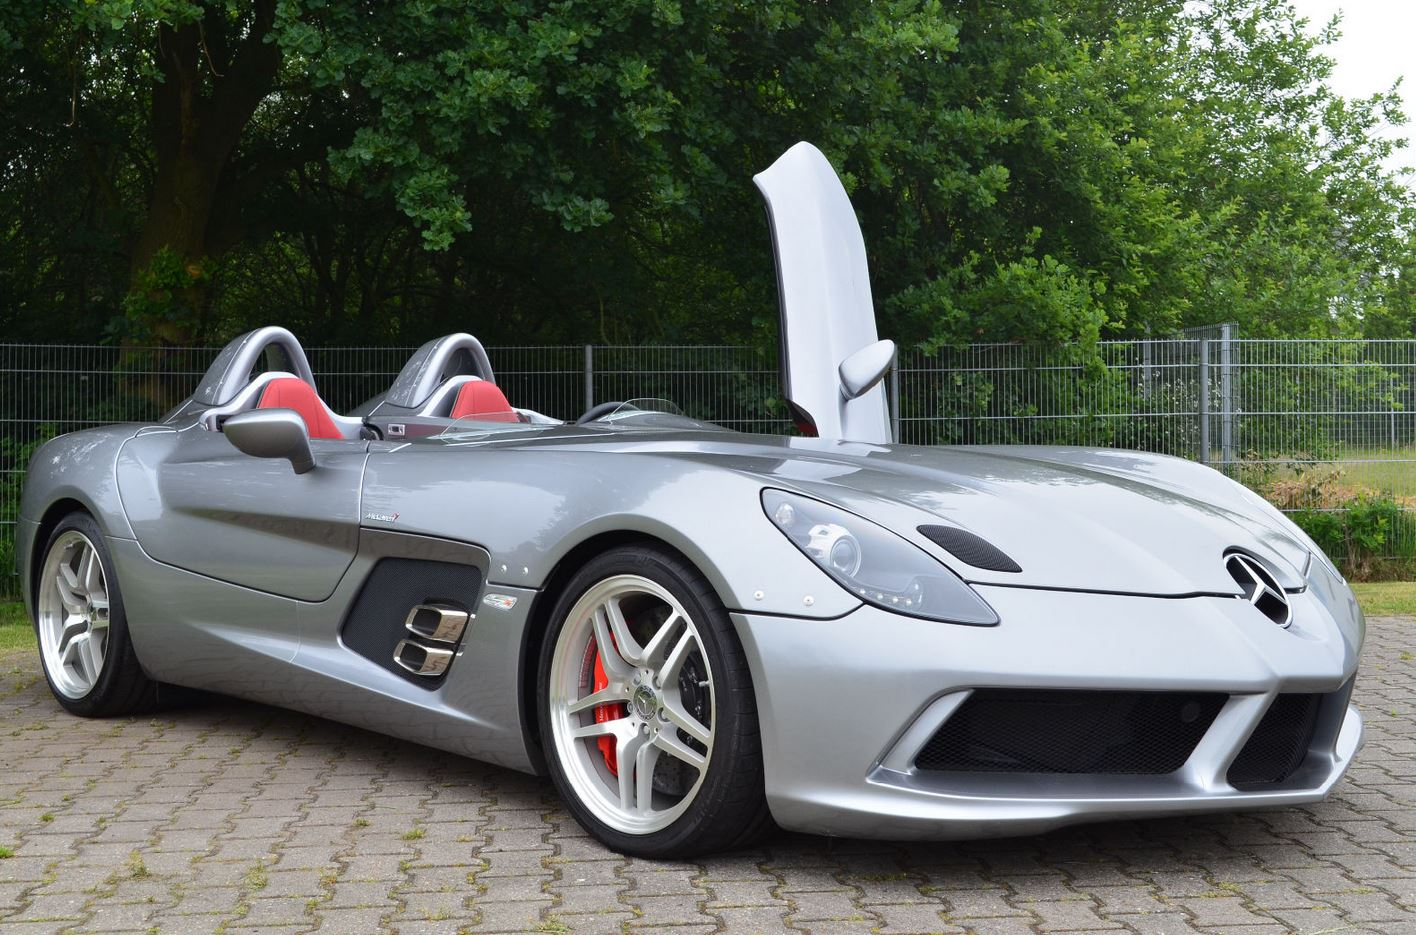 Mint Mercedes Slr Stirling Moss For Sale At 4 Million